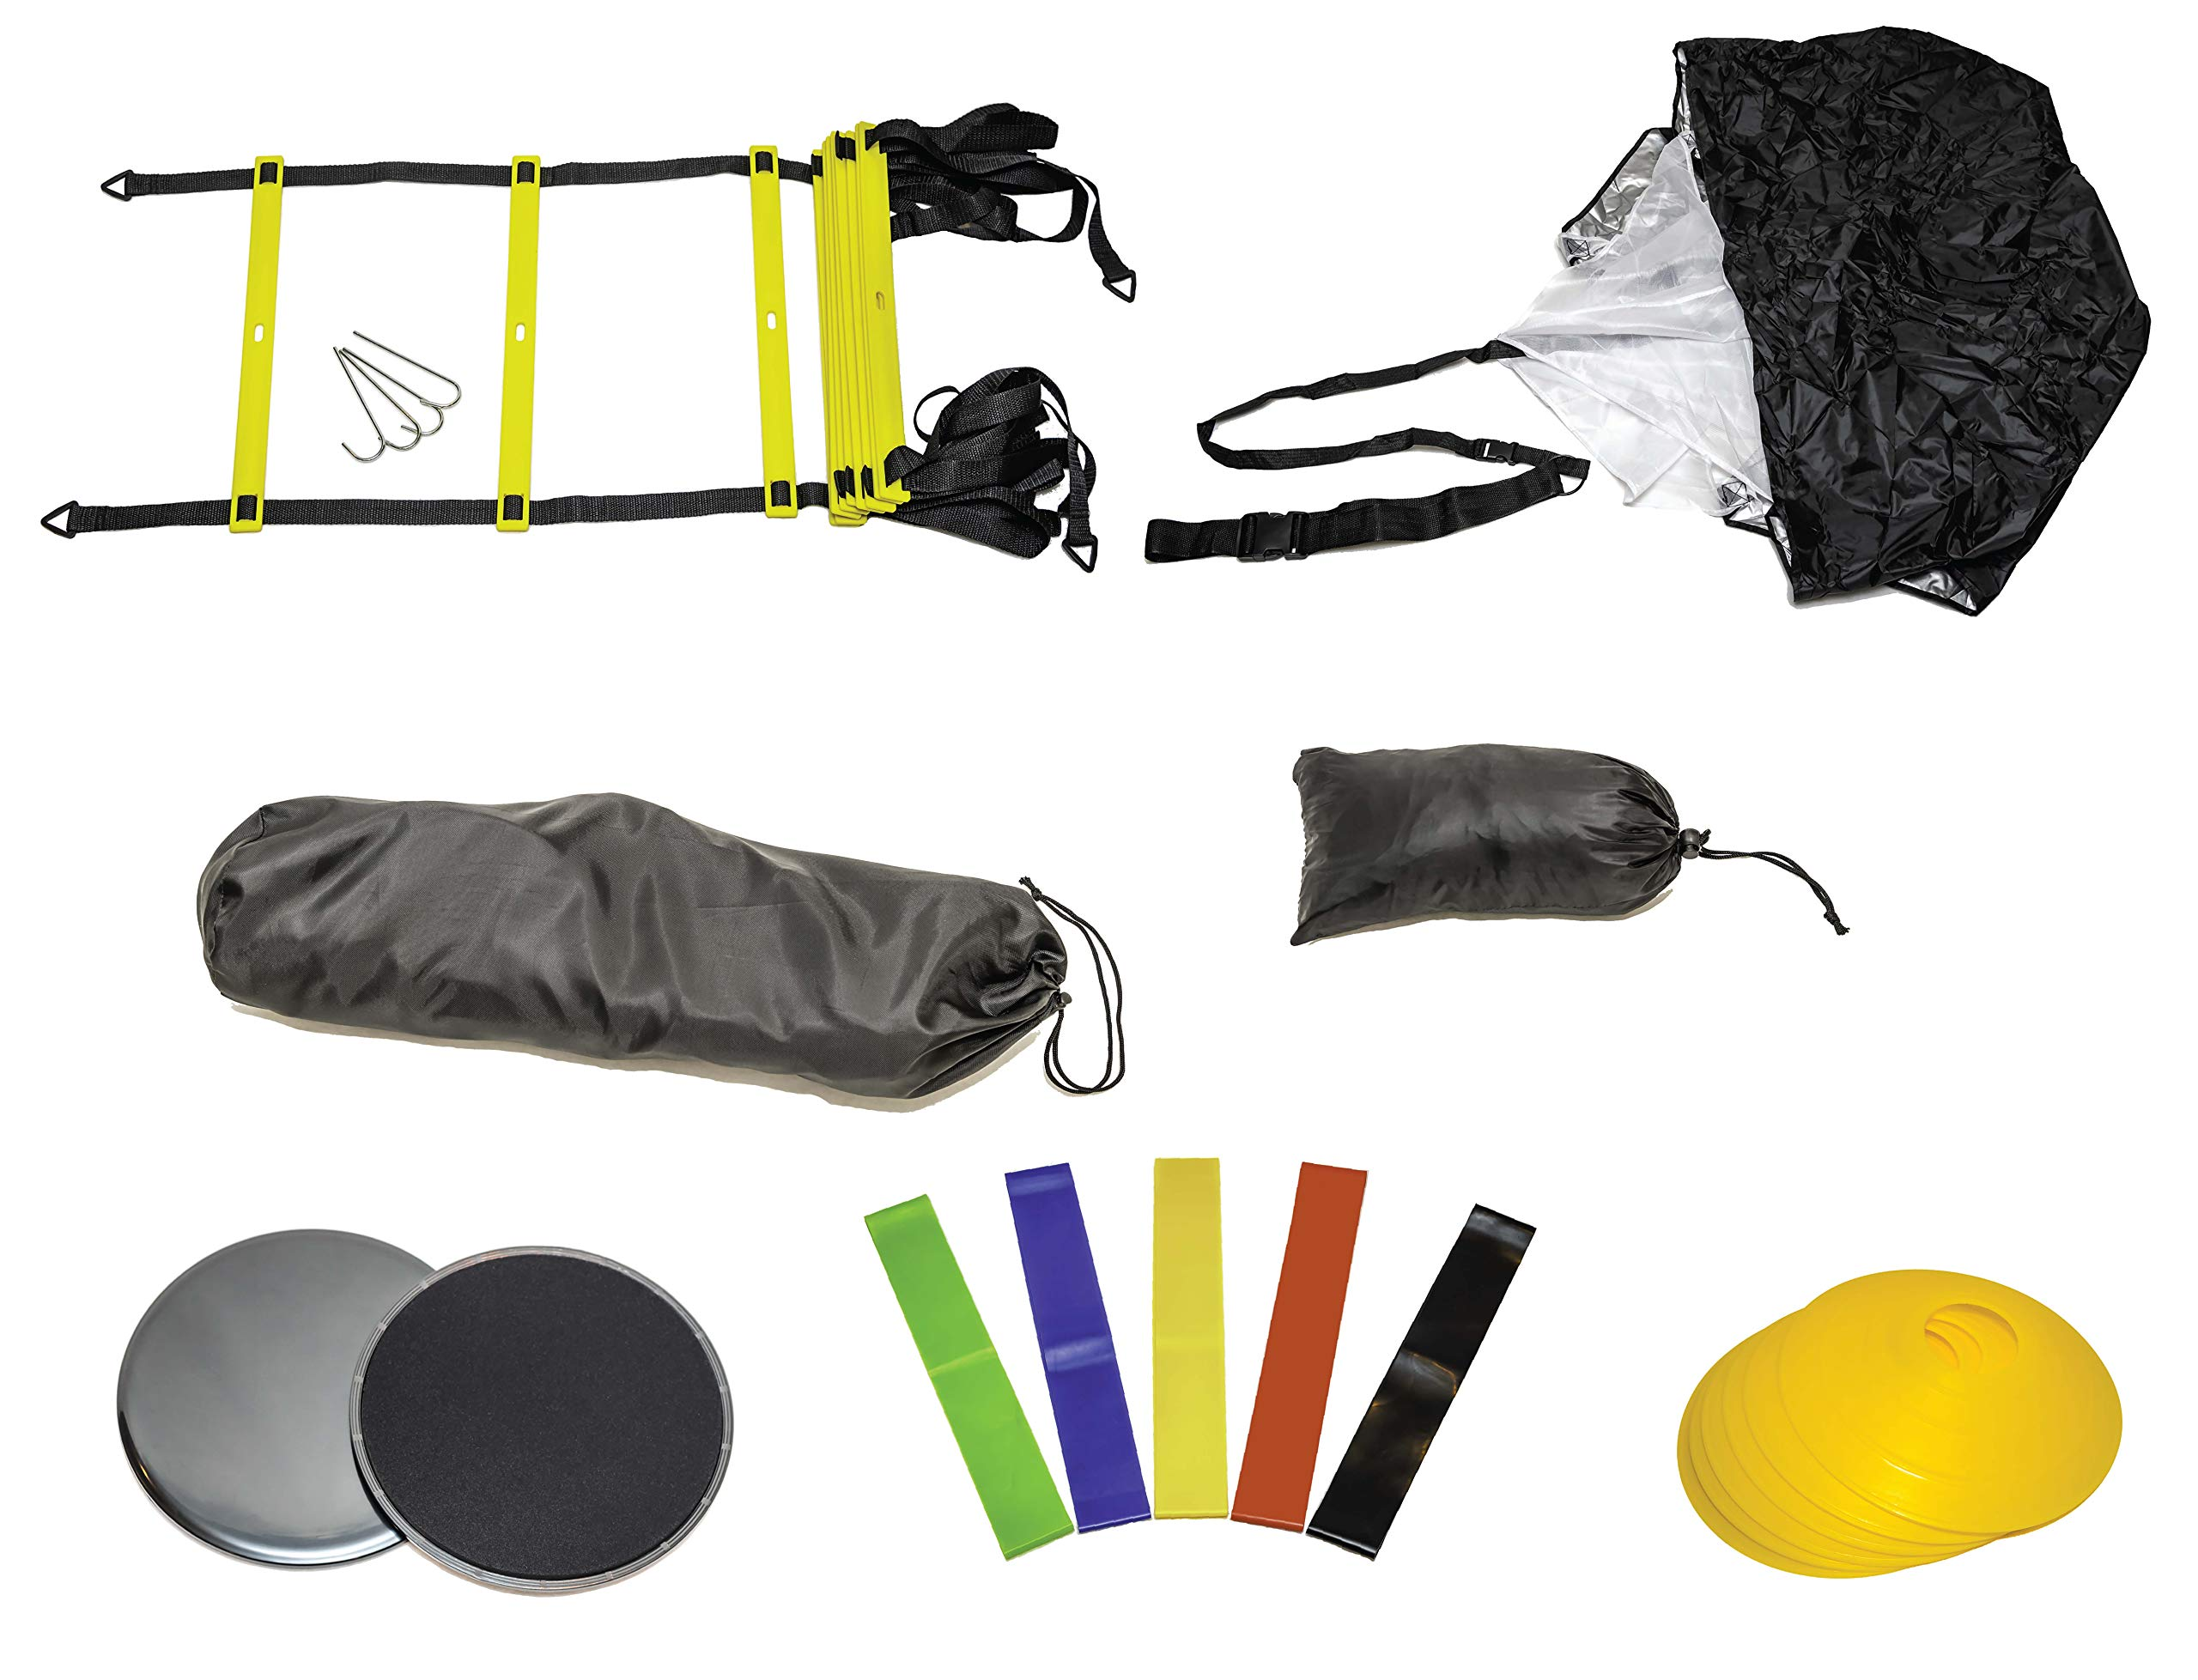 GetupGo Speed Training Kit with eBook-Includes Bag, Agility Ladder, Parachute, Cones, Sliding Discs, Resistance Bands-For Agility, Speed, Strength For Football, Soccer, Basketball, Beachbody, Crossfit